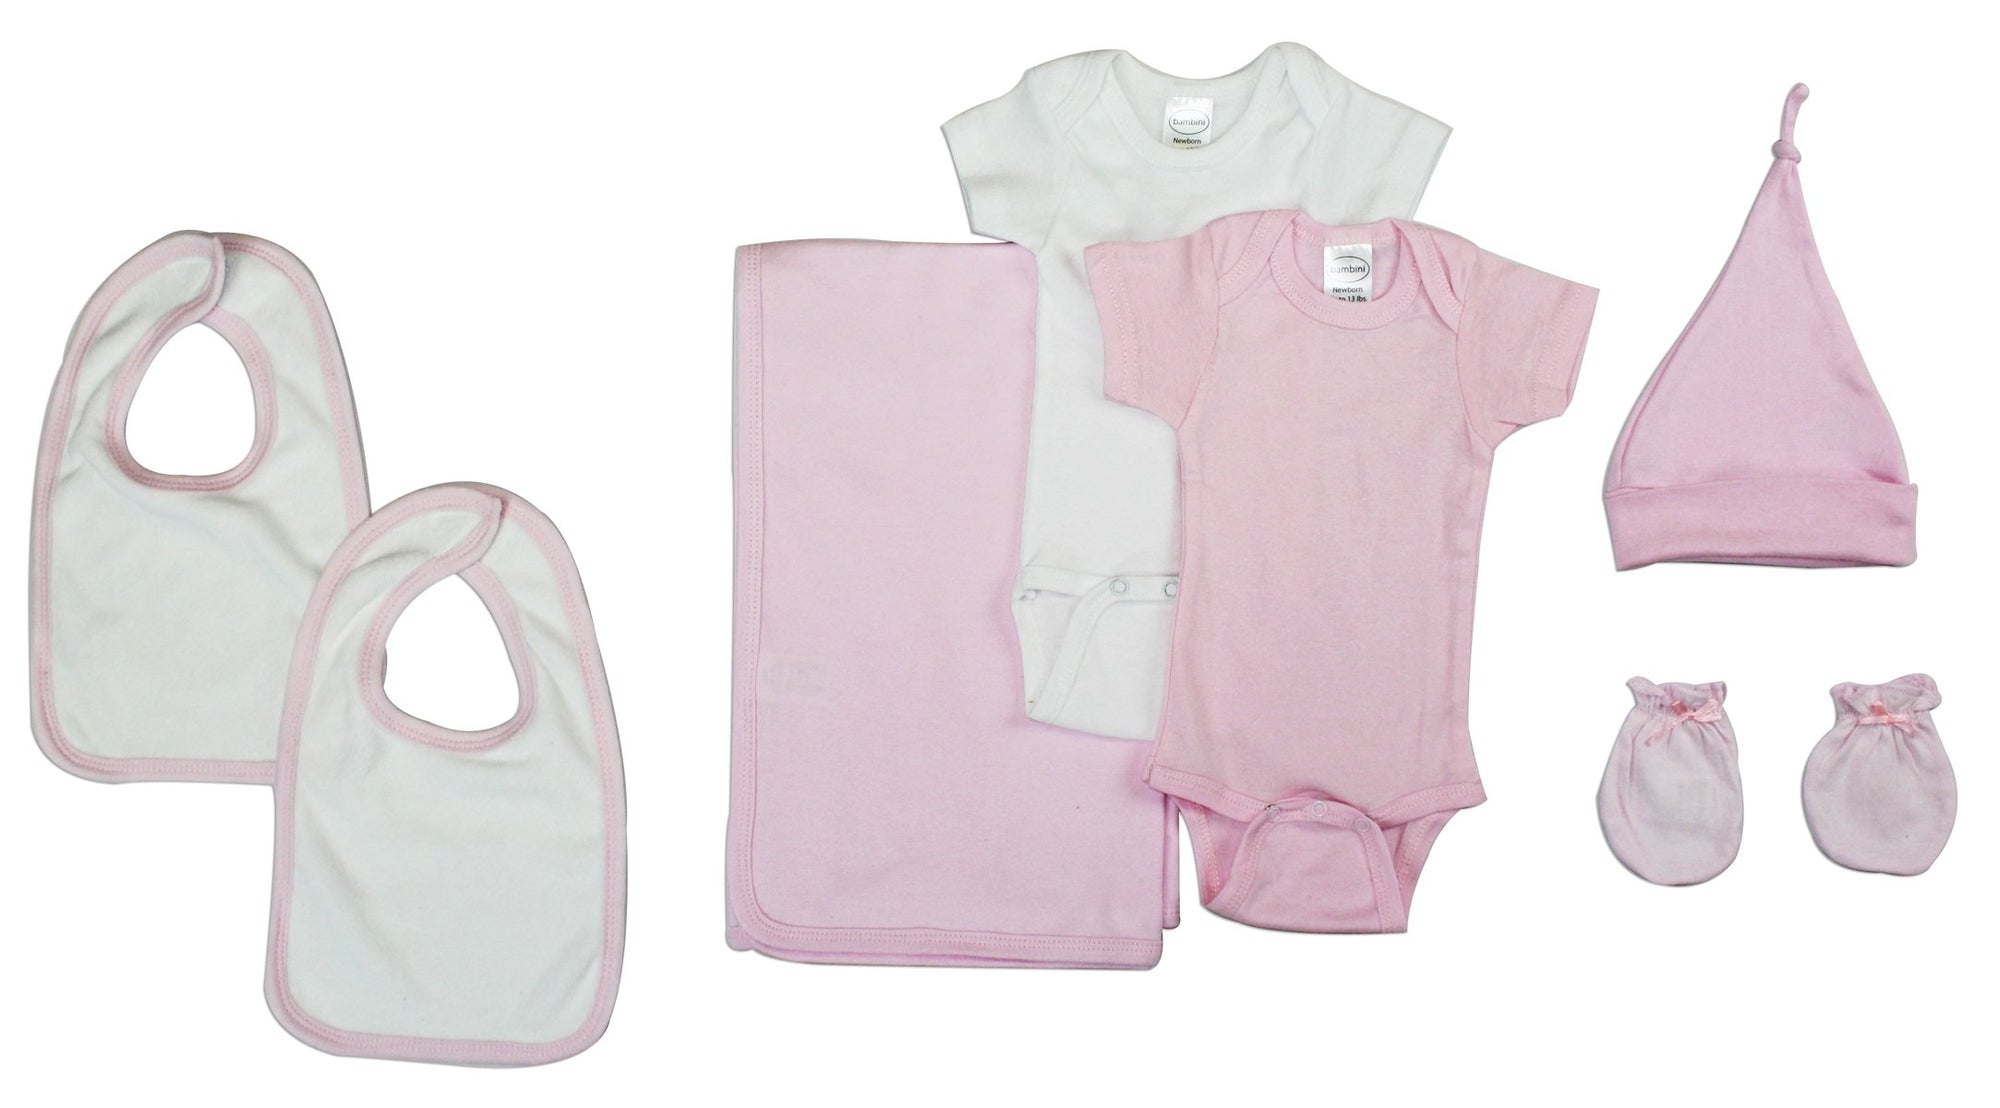 Bambini Newborn Baby Girl 7 Pc Layette Gift Set - Baby World Inc